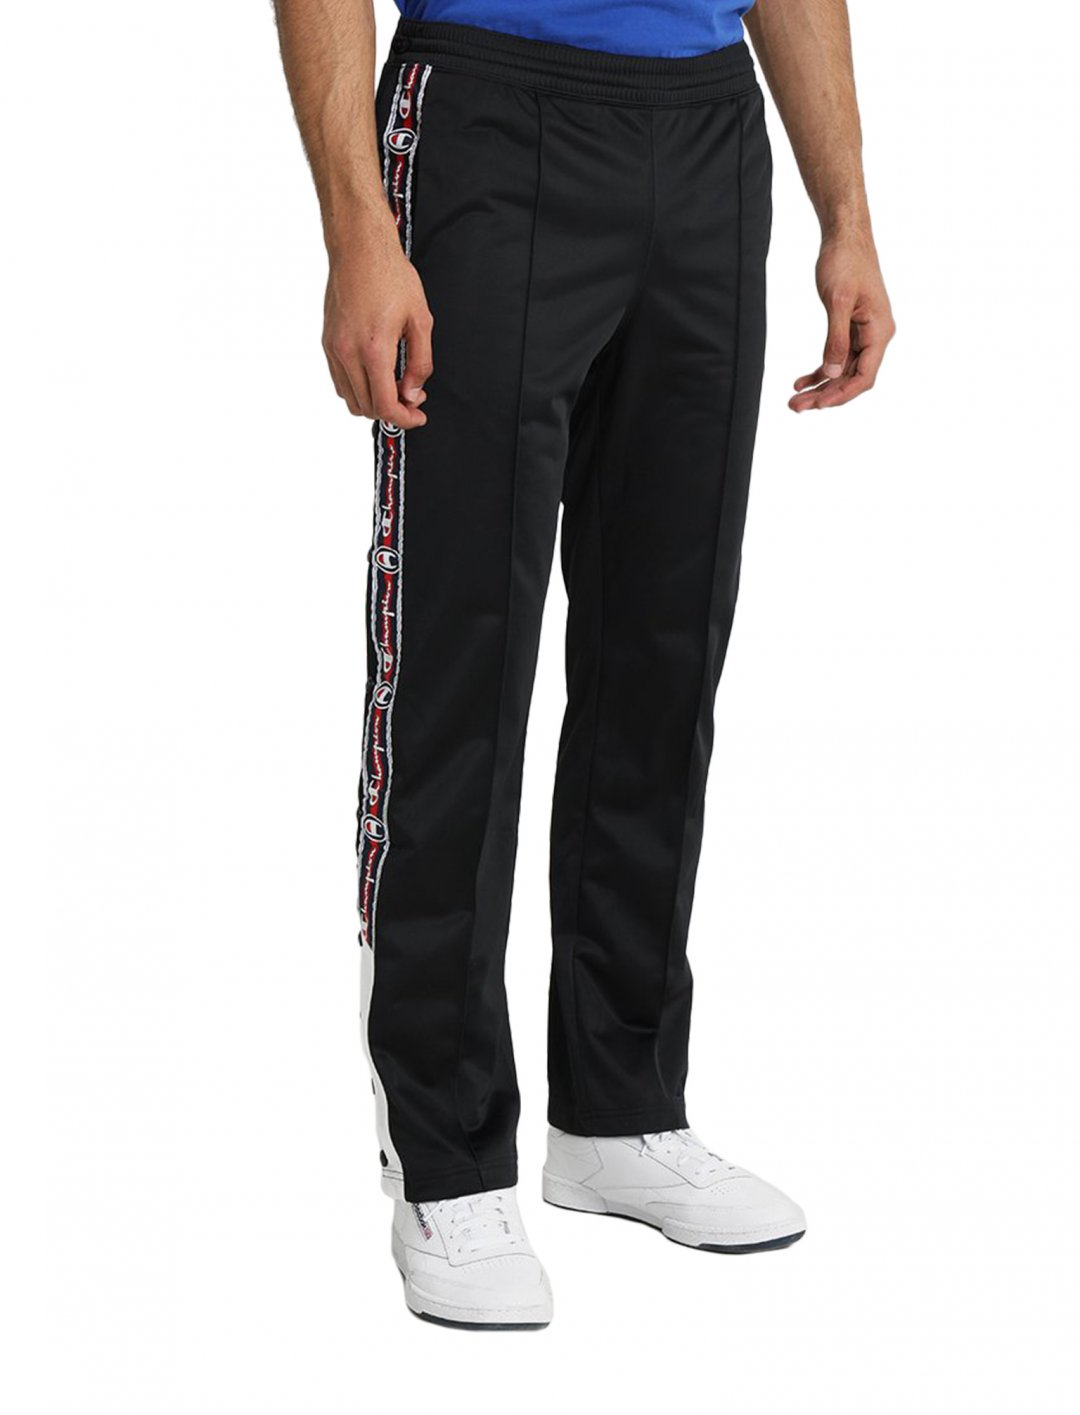 "Not3s' Tracksuit Bottoms {""id"":5,""product_section_id"":1,""name"":""Clothing"",""order"":5} Champion"